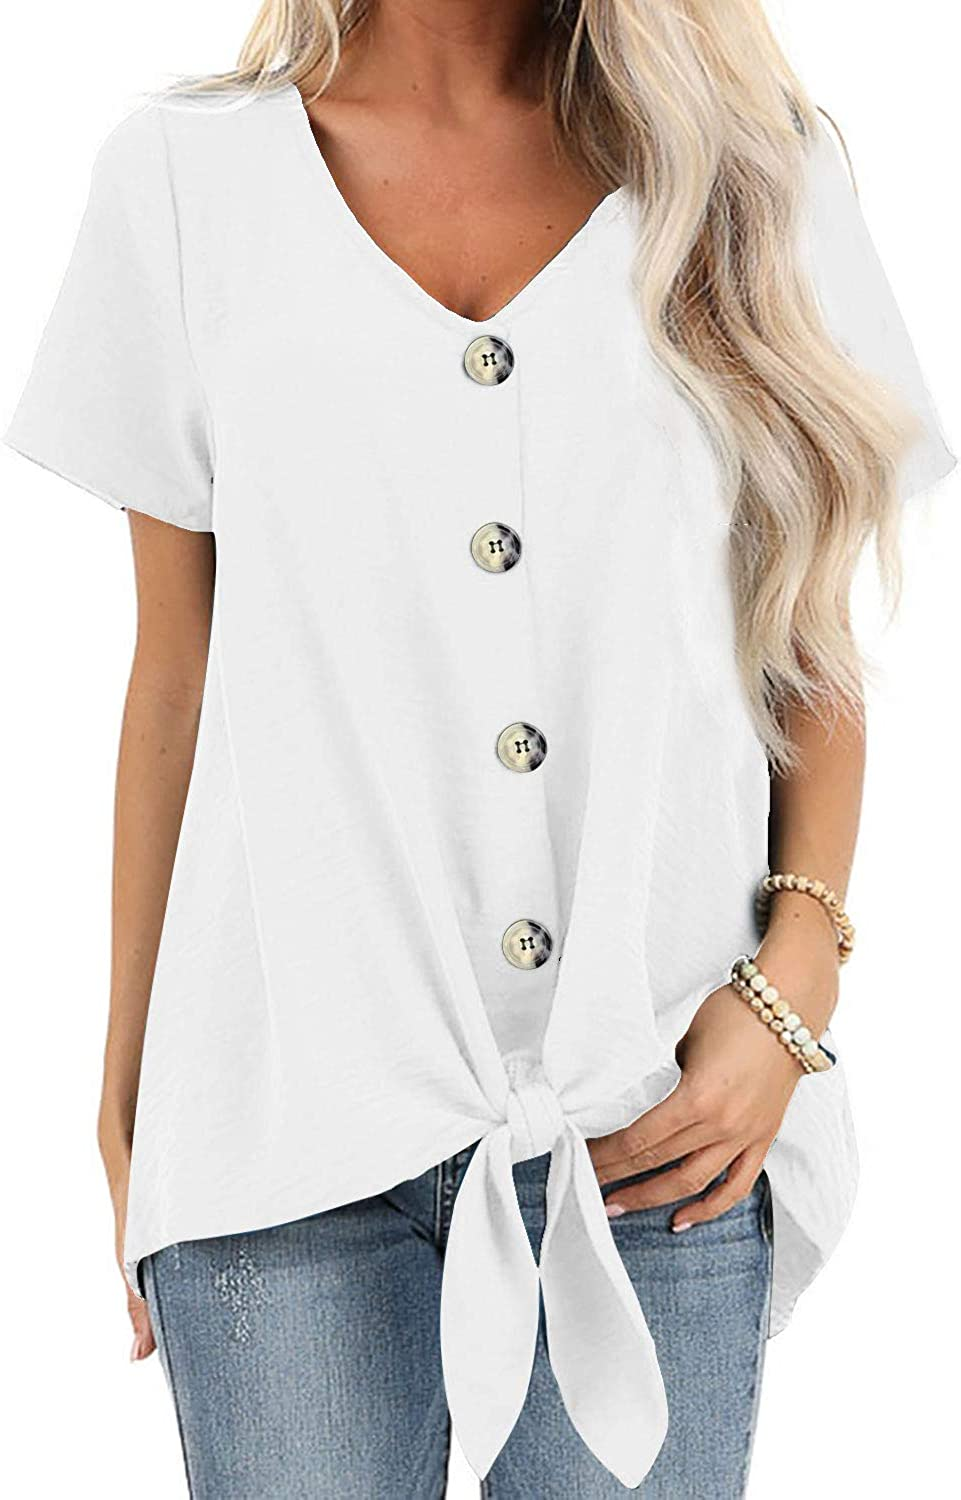 DidHaapin Womens Button Down V Neck Shirts Loose Casual Short Sleeves Blouse